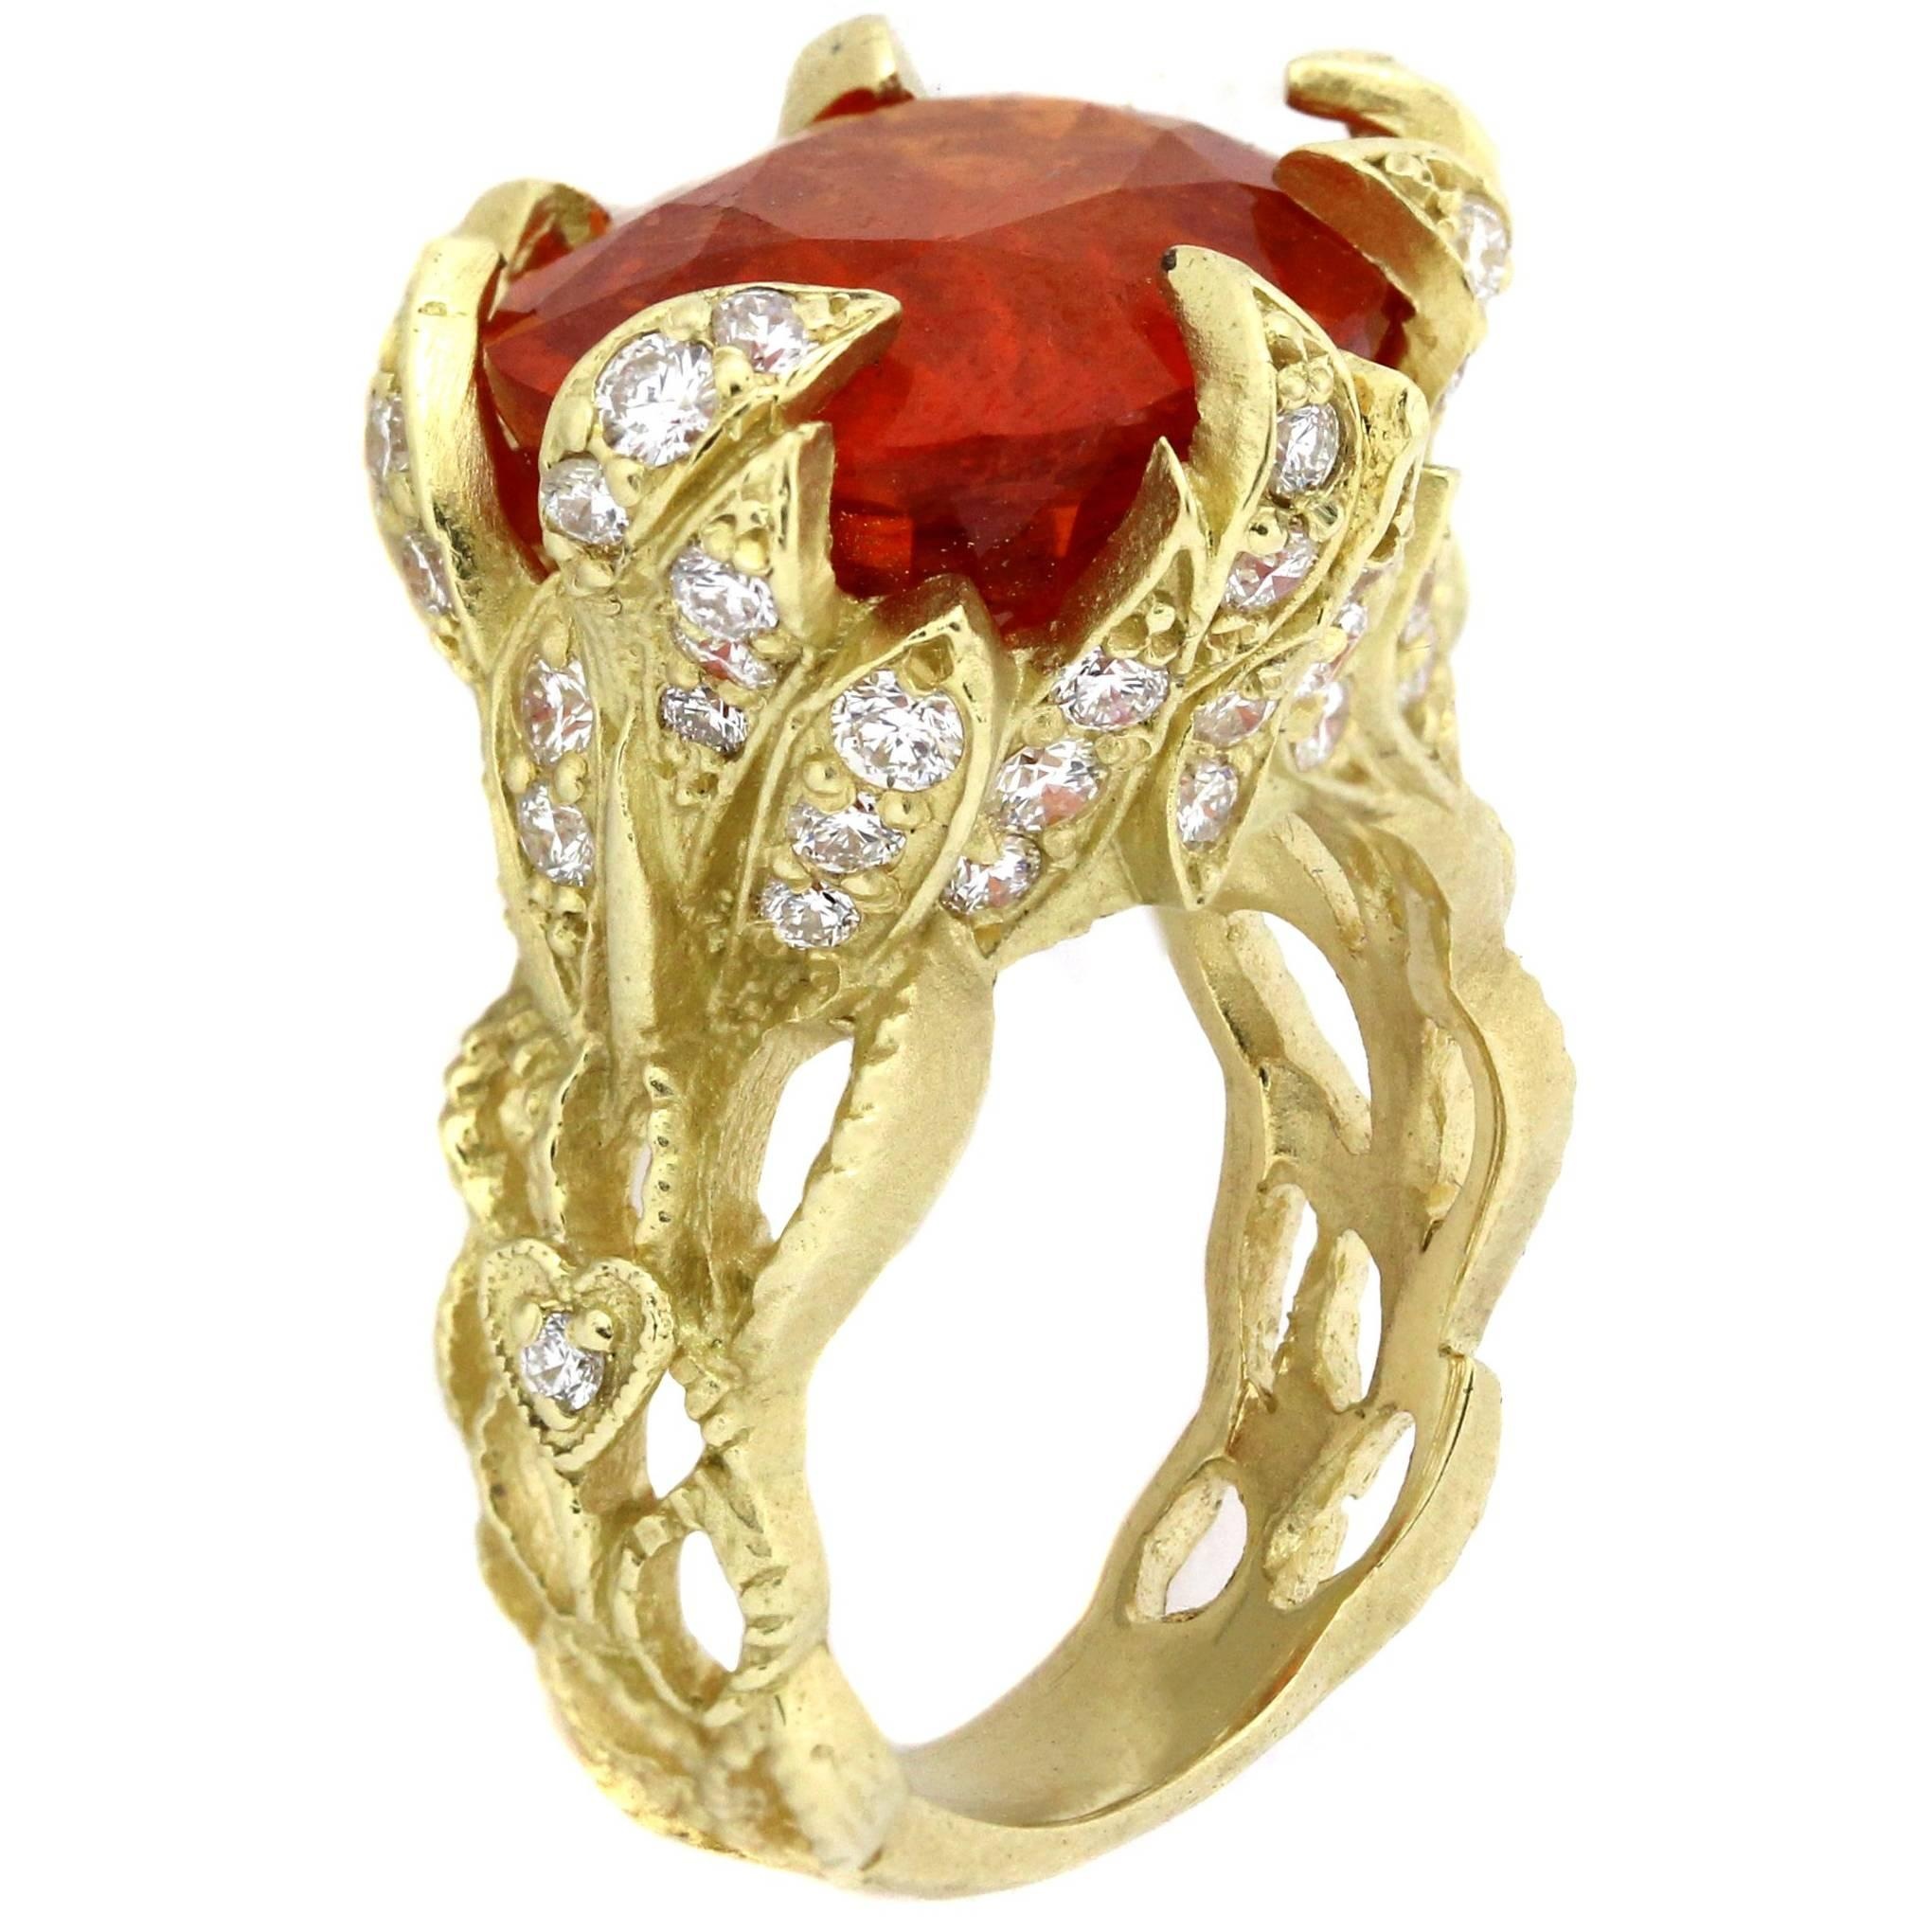 gemstones mahenge showcase products image ring diamond garnet